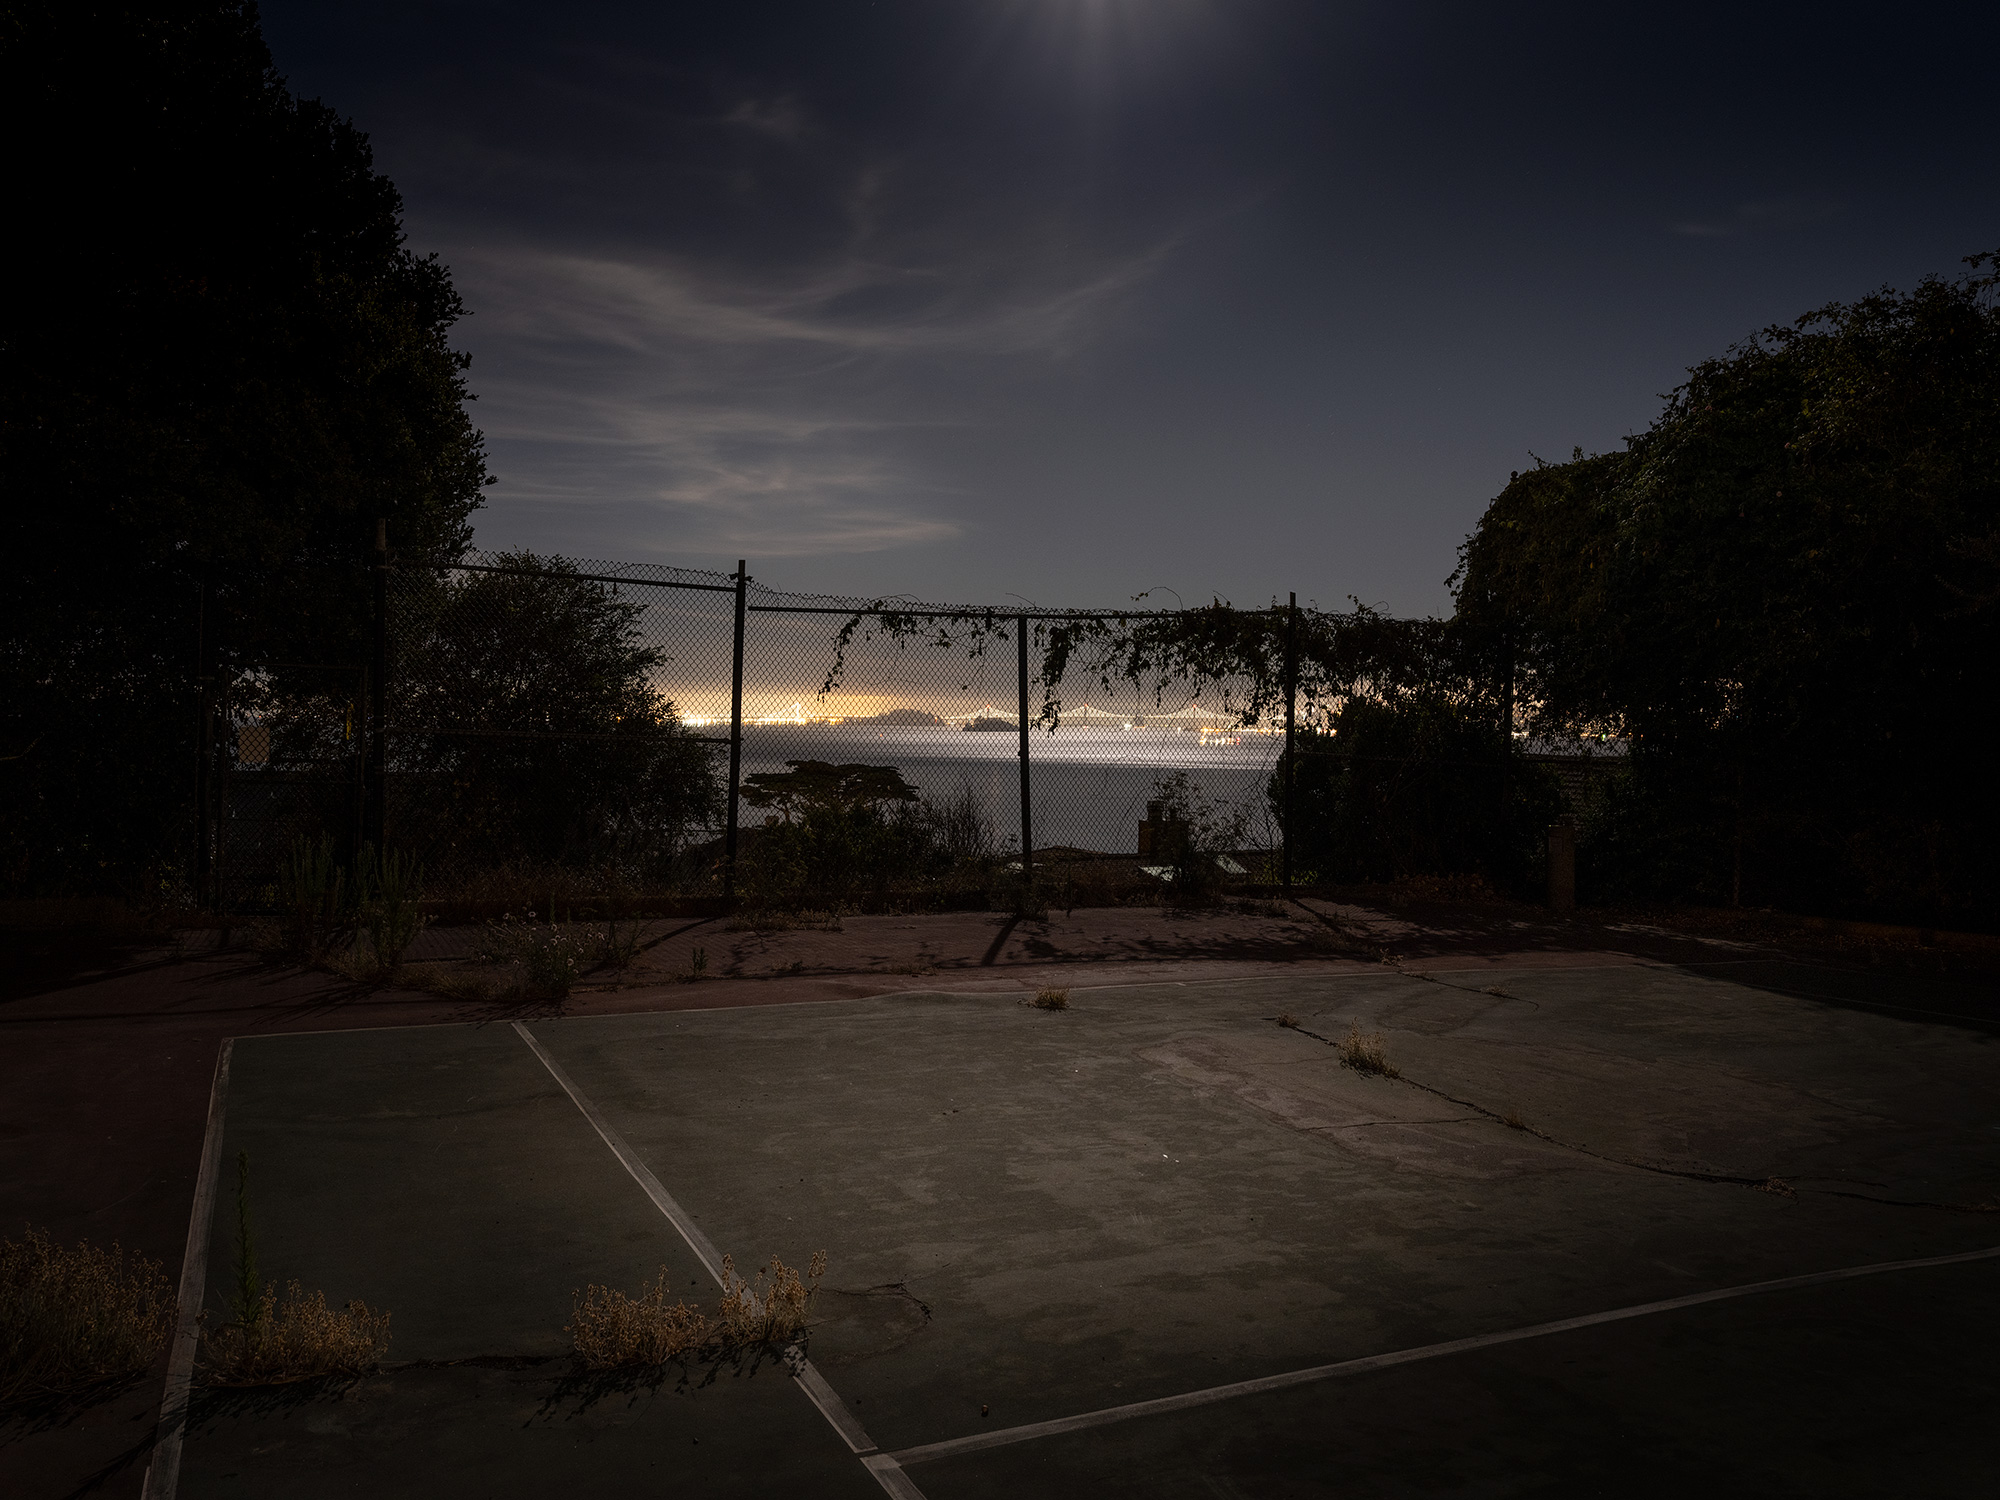 A tennis court at night overlooking The Bay Area.